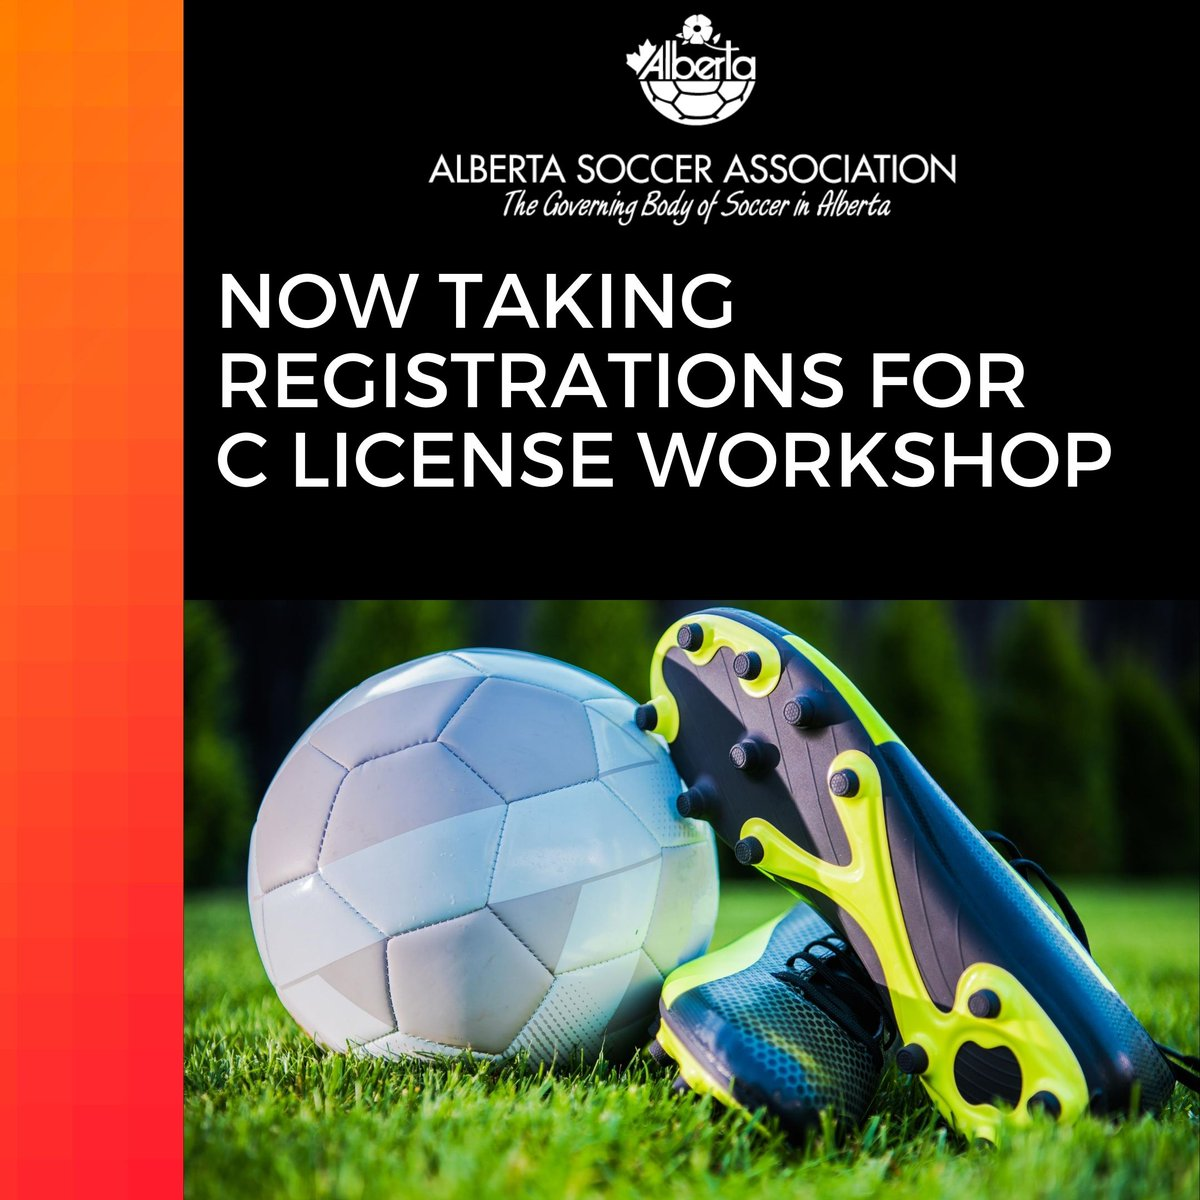 One day left to register for the Online C License workshop - registration closes Sept 12th. For more information check out our website at https://t.co/3Tz40DtmgQ https://t.co/Mo4pbk3IrS